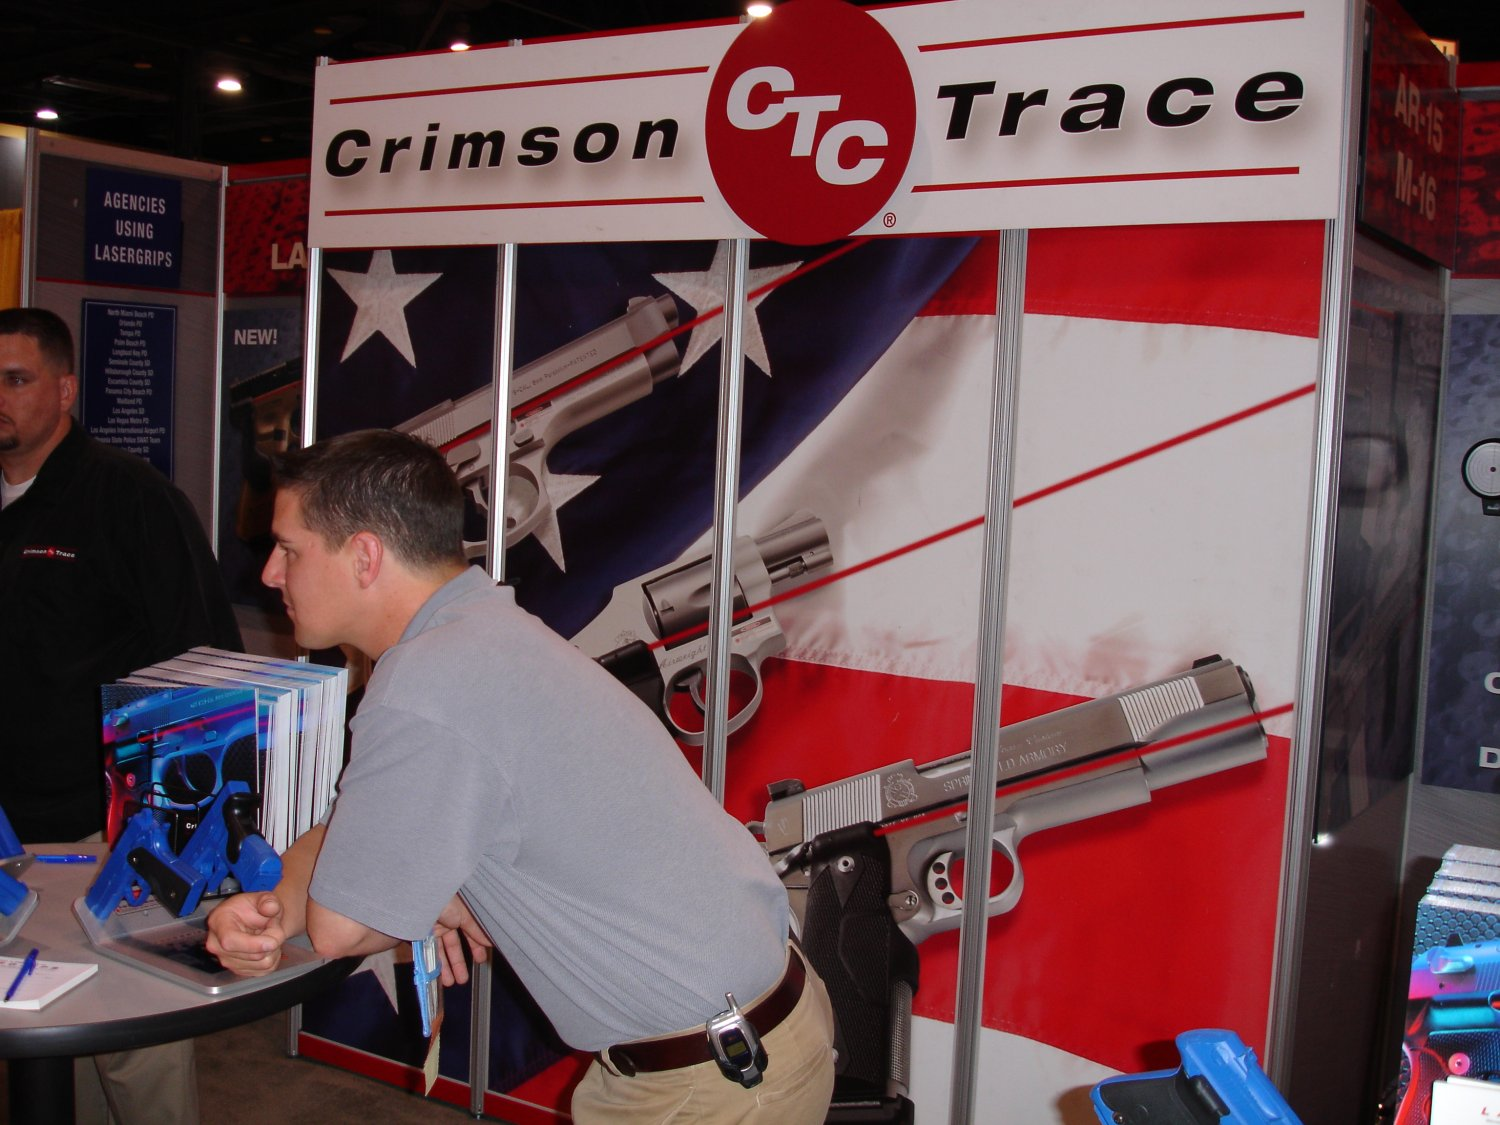 Crimson%20Trace%20at%20IACP%20Miami%202005 1 <!  :en  >Crimson Trace Introduces New G Series Lasergrips for Glock Pistols at IACP 2005<!  :  >